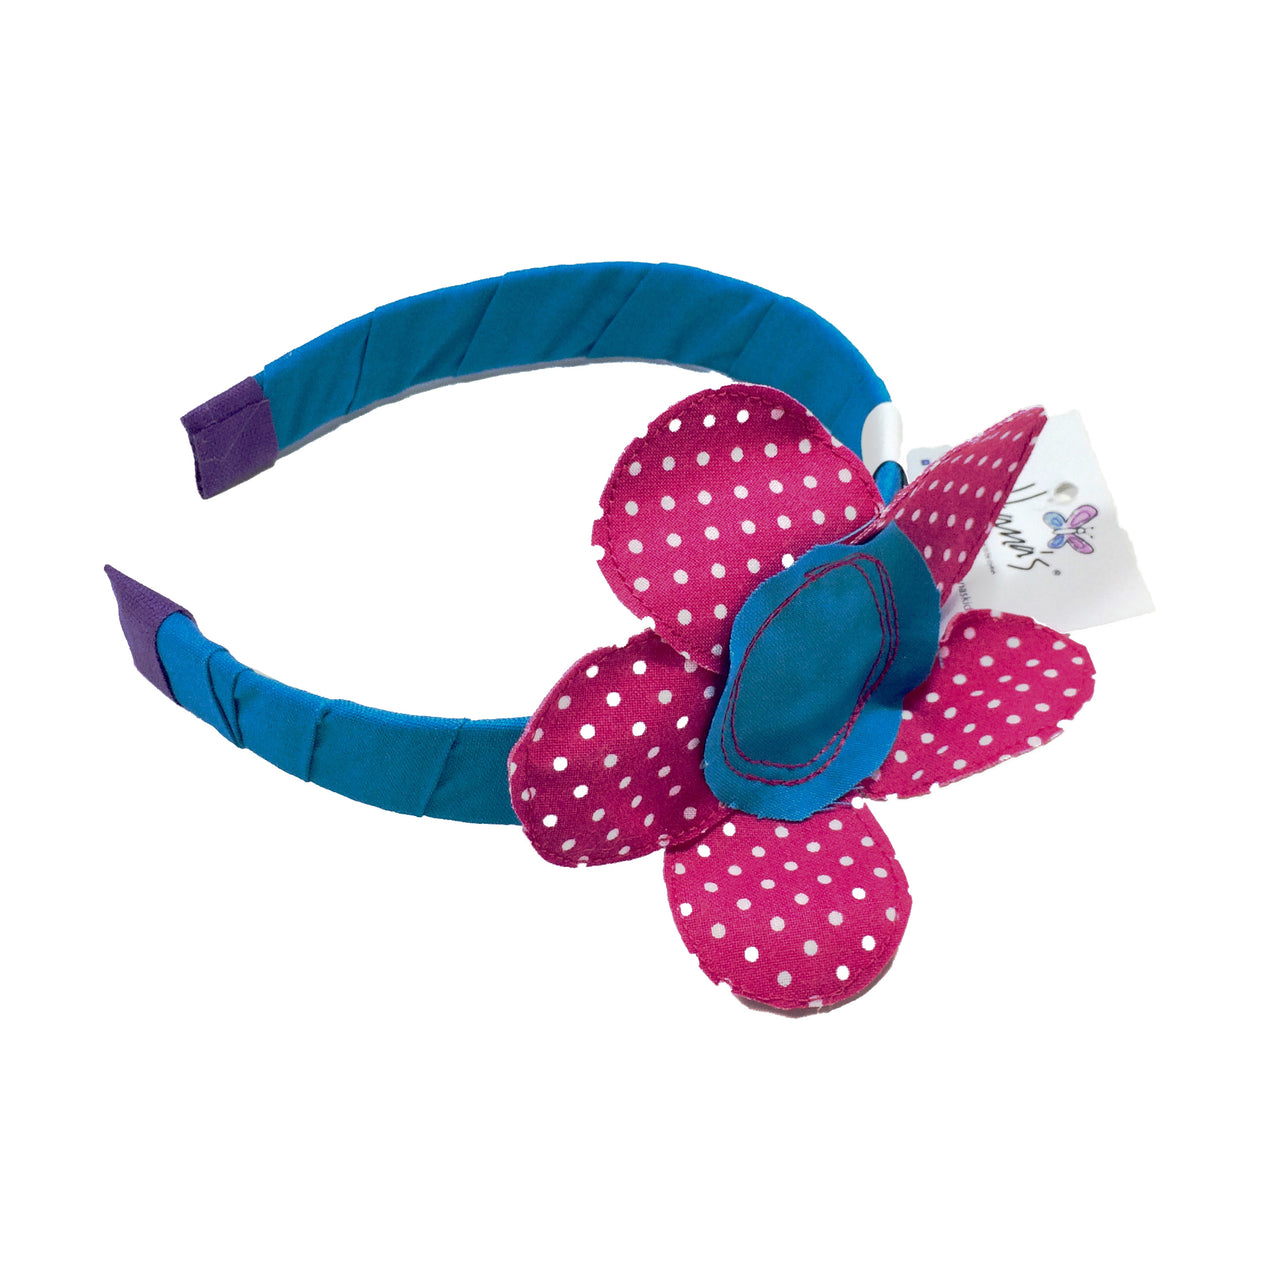 Turquoise Headband with Fuchsia Flower - Kids Room Decor | Toys Gifts | Childrens Interiors | Rooms for Rascals